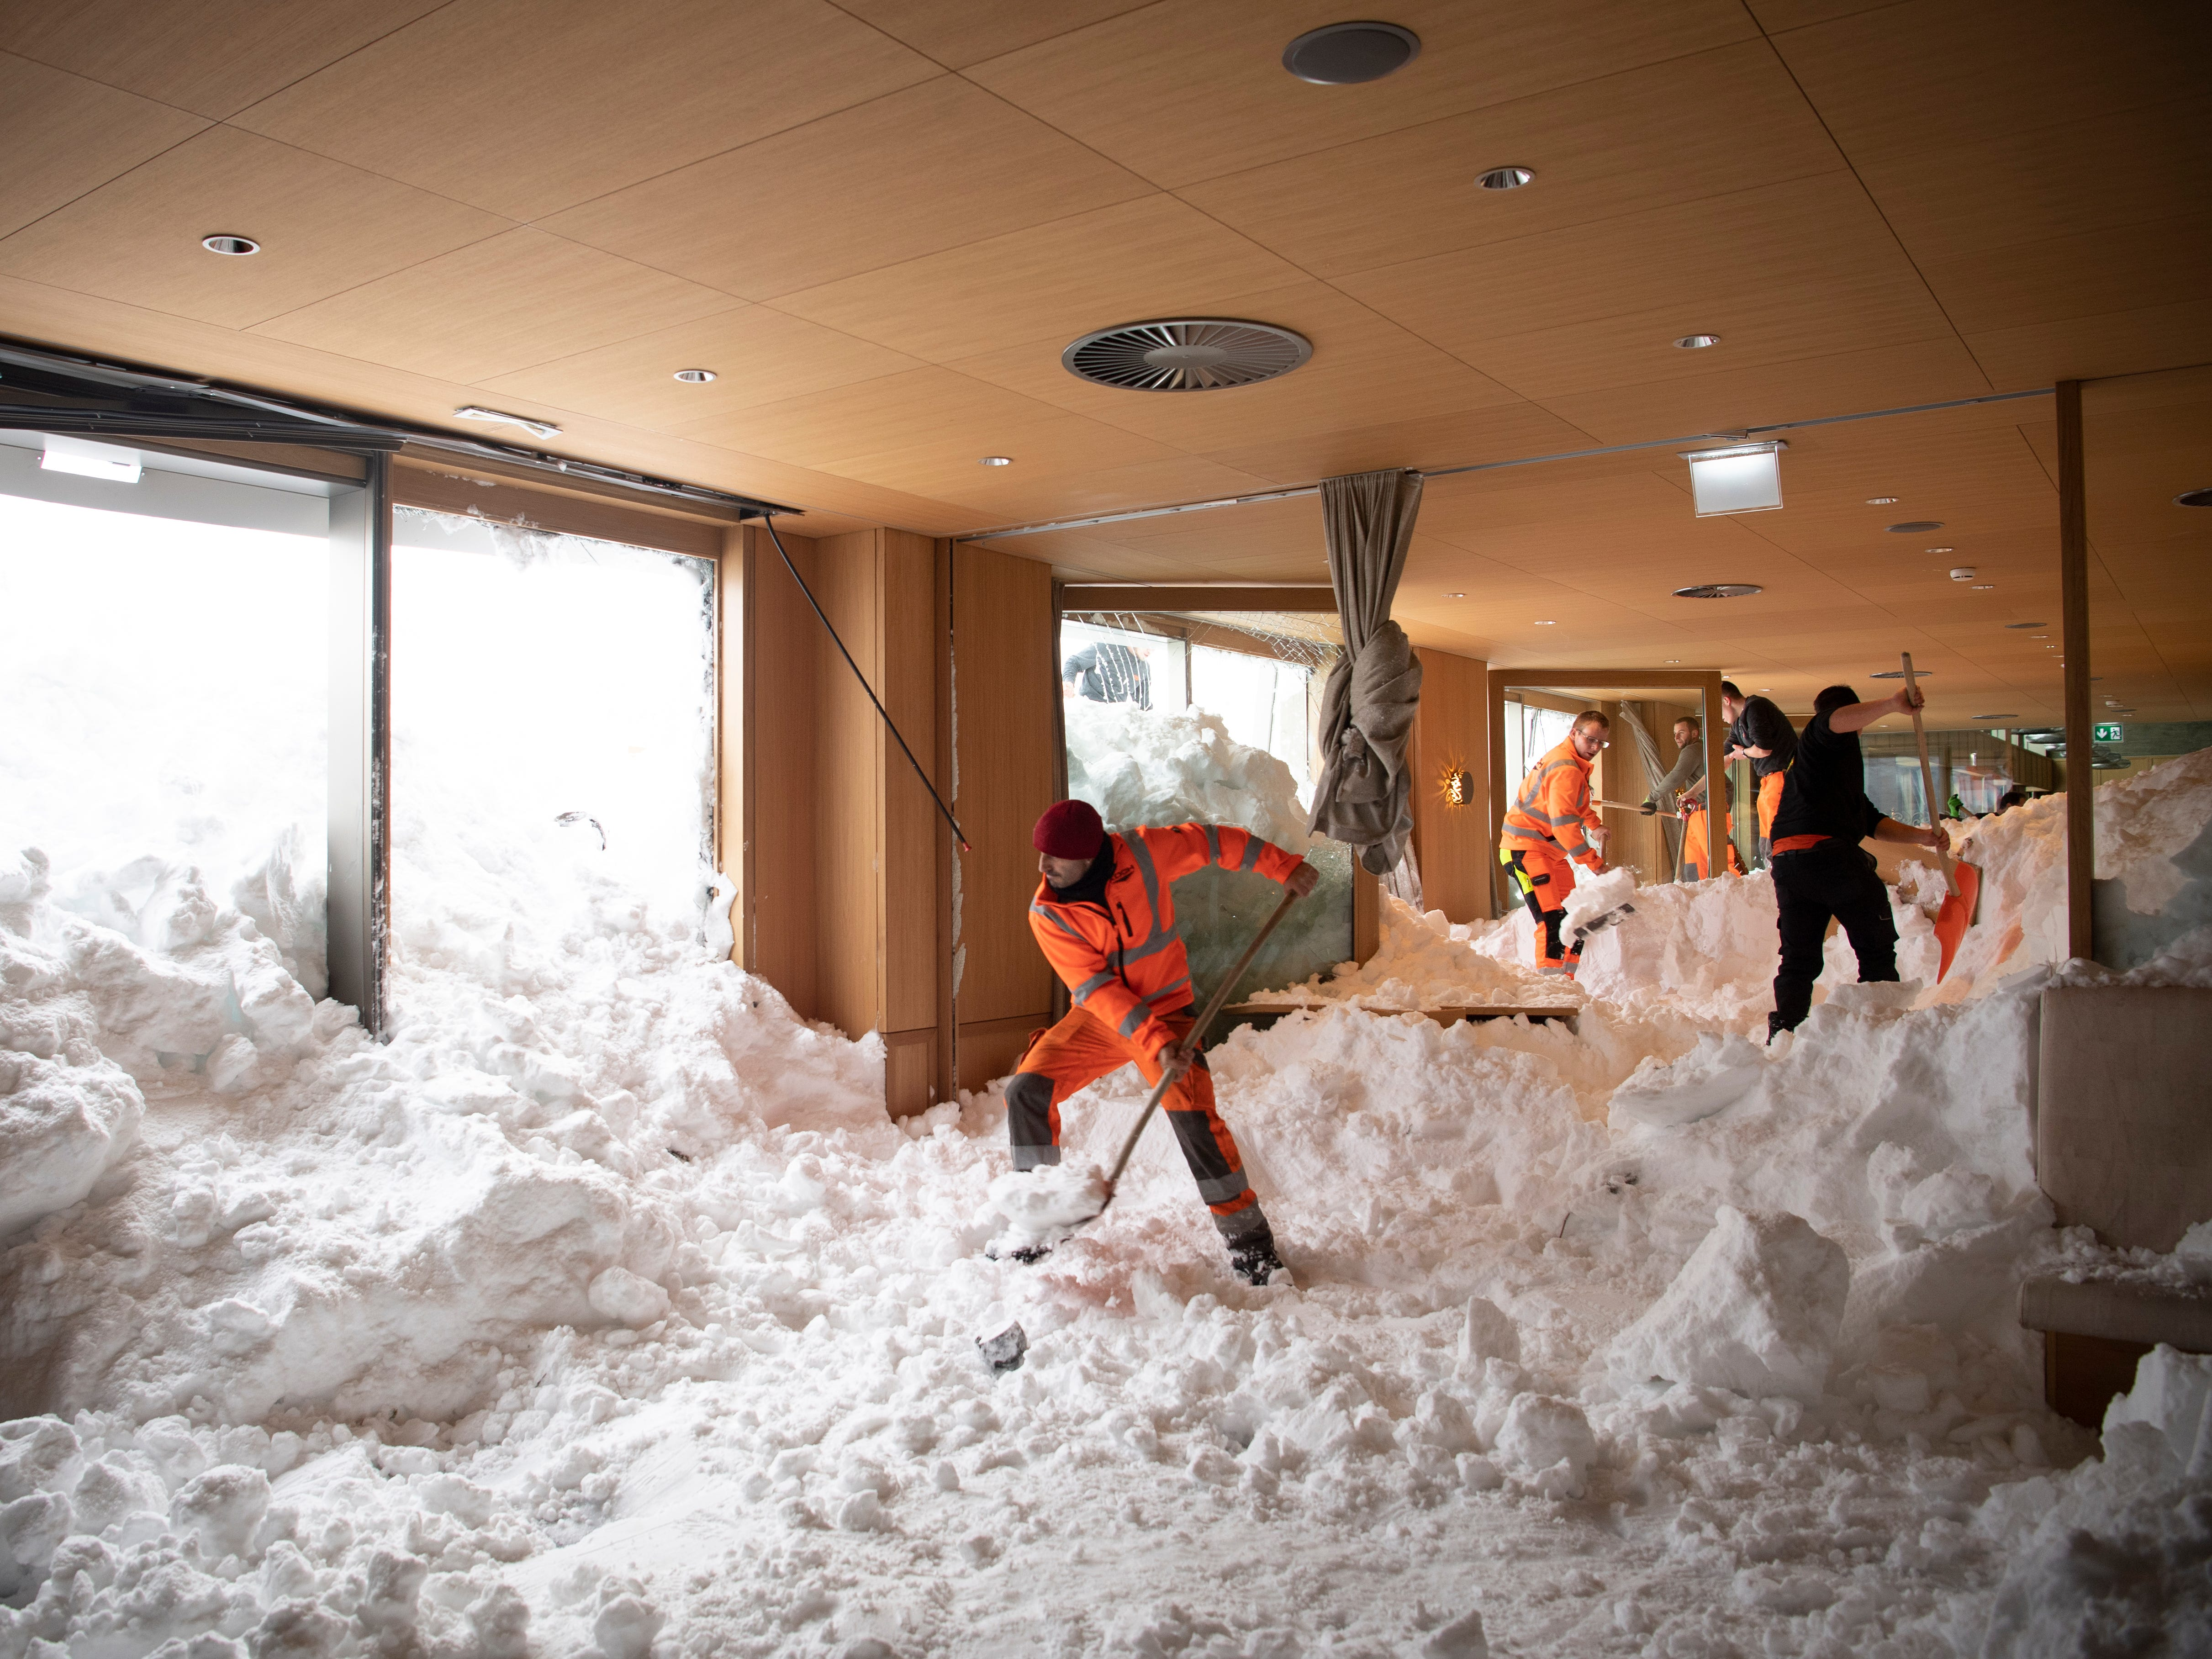 People clear snow from inside the Hotel Saentis in Schwaegalp, Switzerland, after an avalanche, Ajan 11. 2019. Police said three people were slightly hurt.